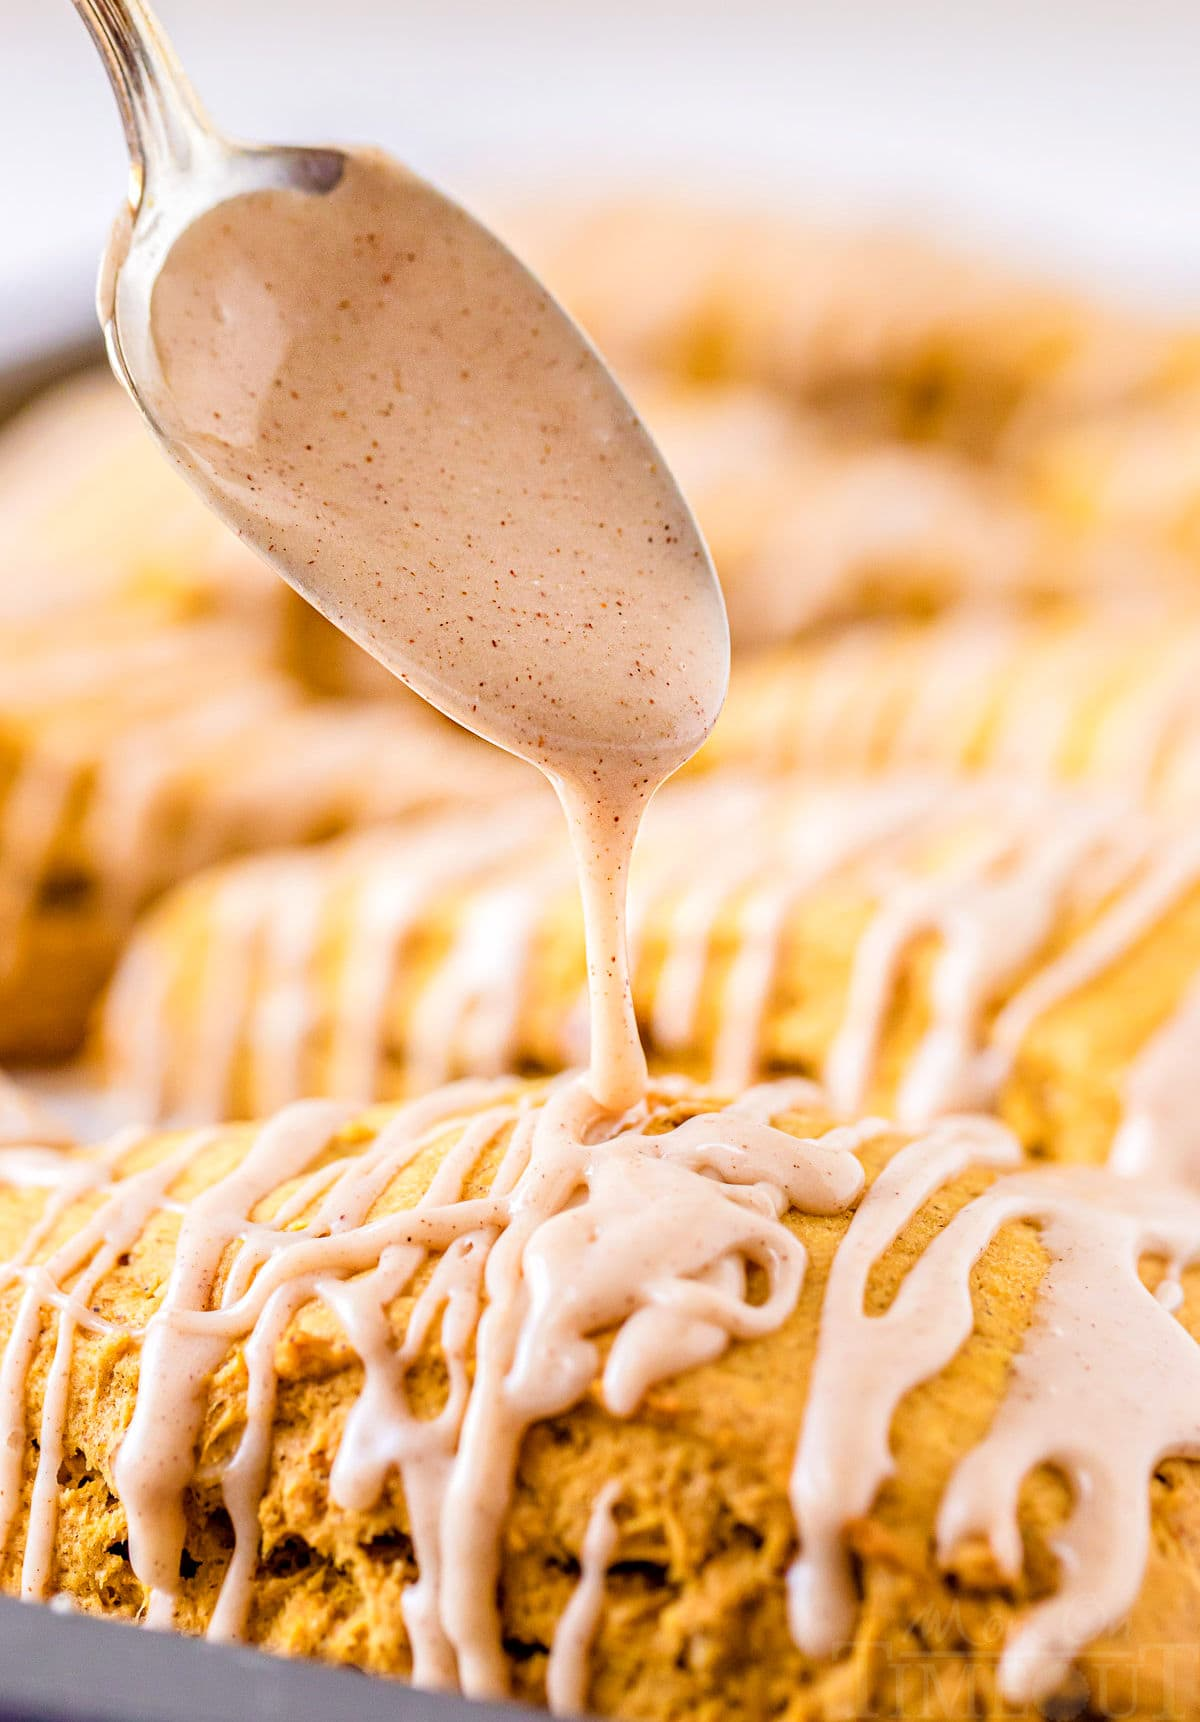 maple cinnamon glaze being drizzled on scones